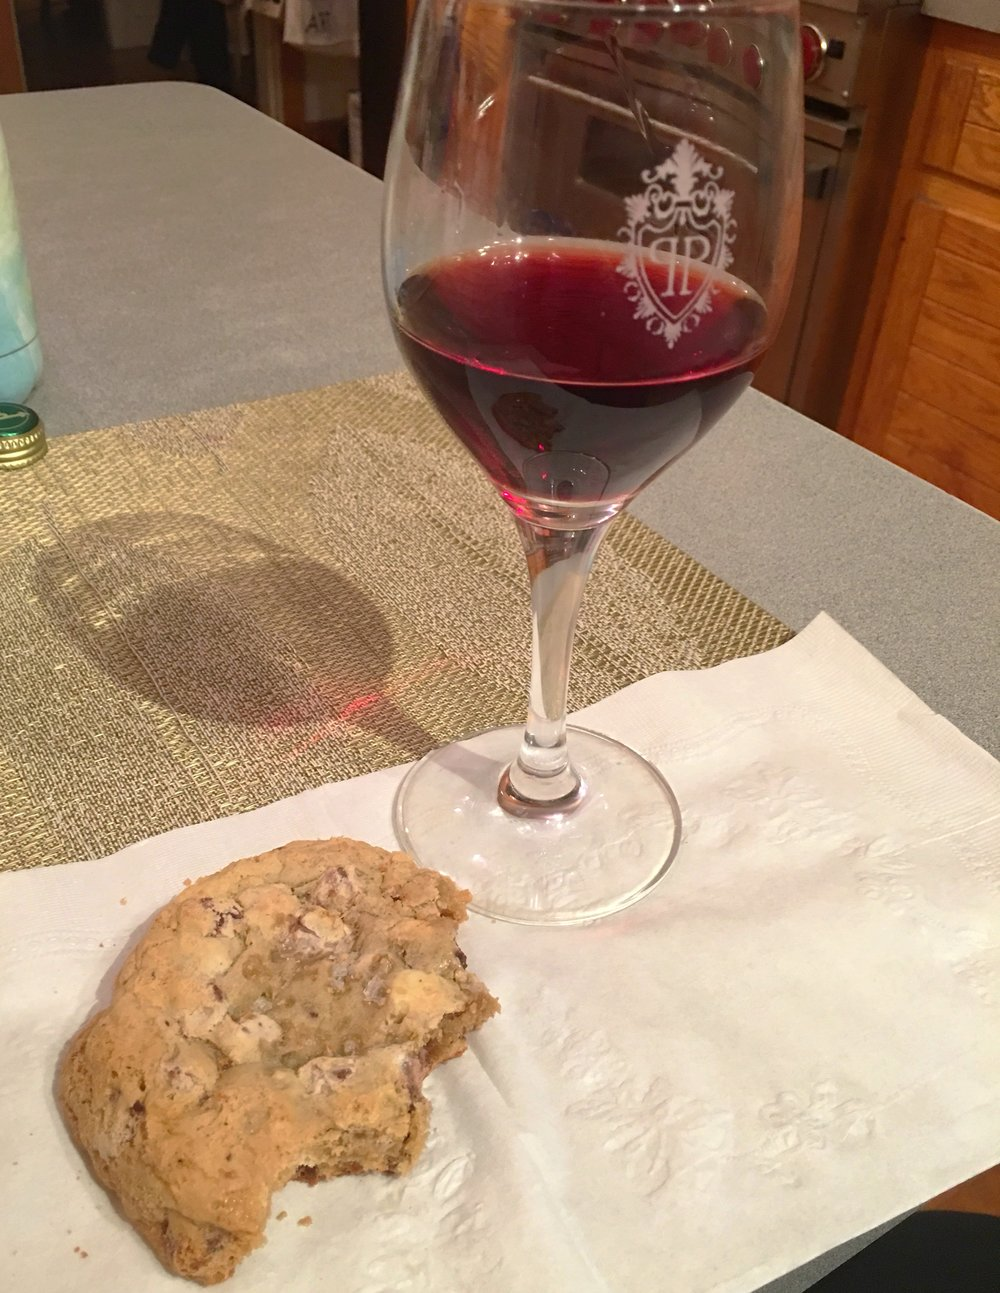 Post clean-up cookie and wine. Everyone does this, right?